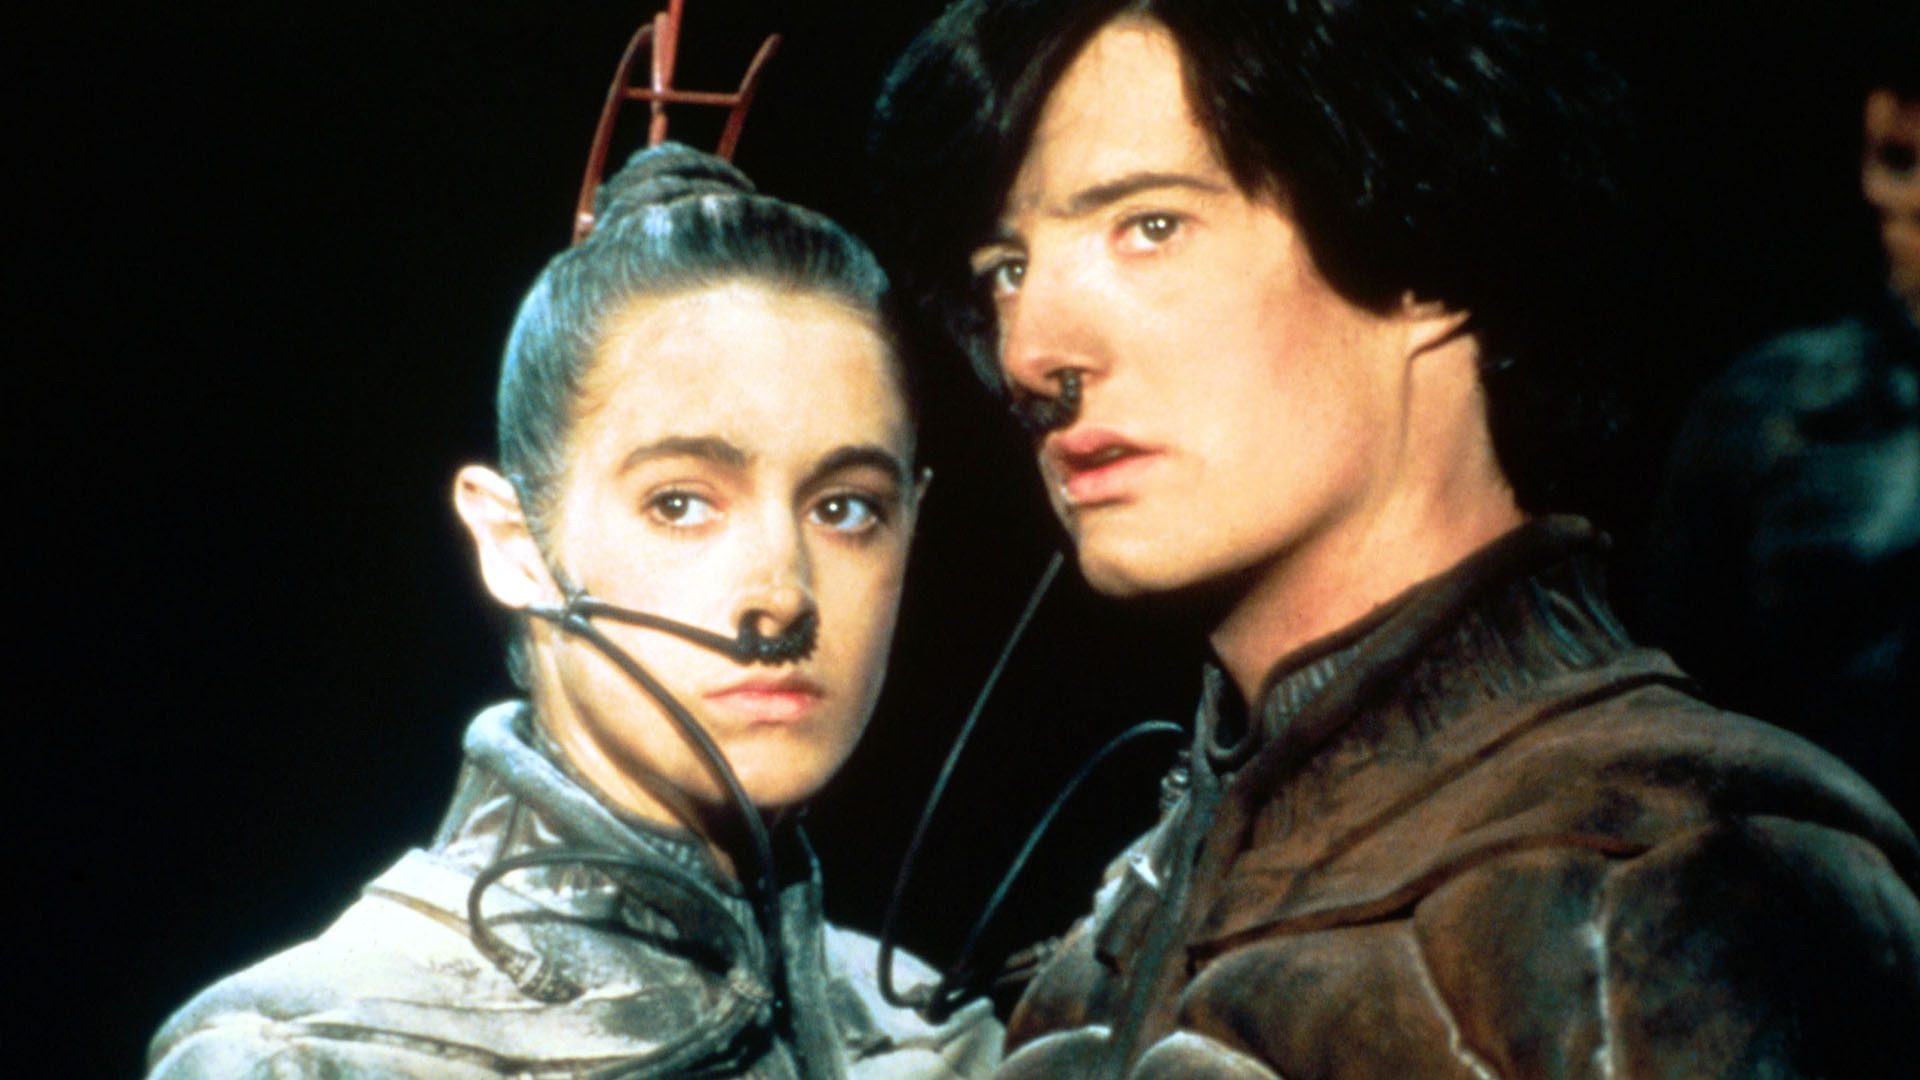 Frank Herbert's Dune by David Lynch with Kyle MacLachlan, Sean Young,  Sting, Patrick